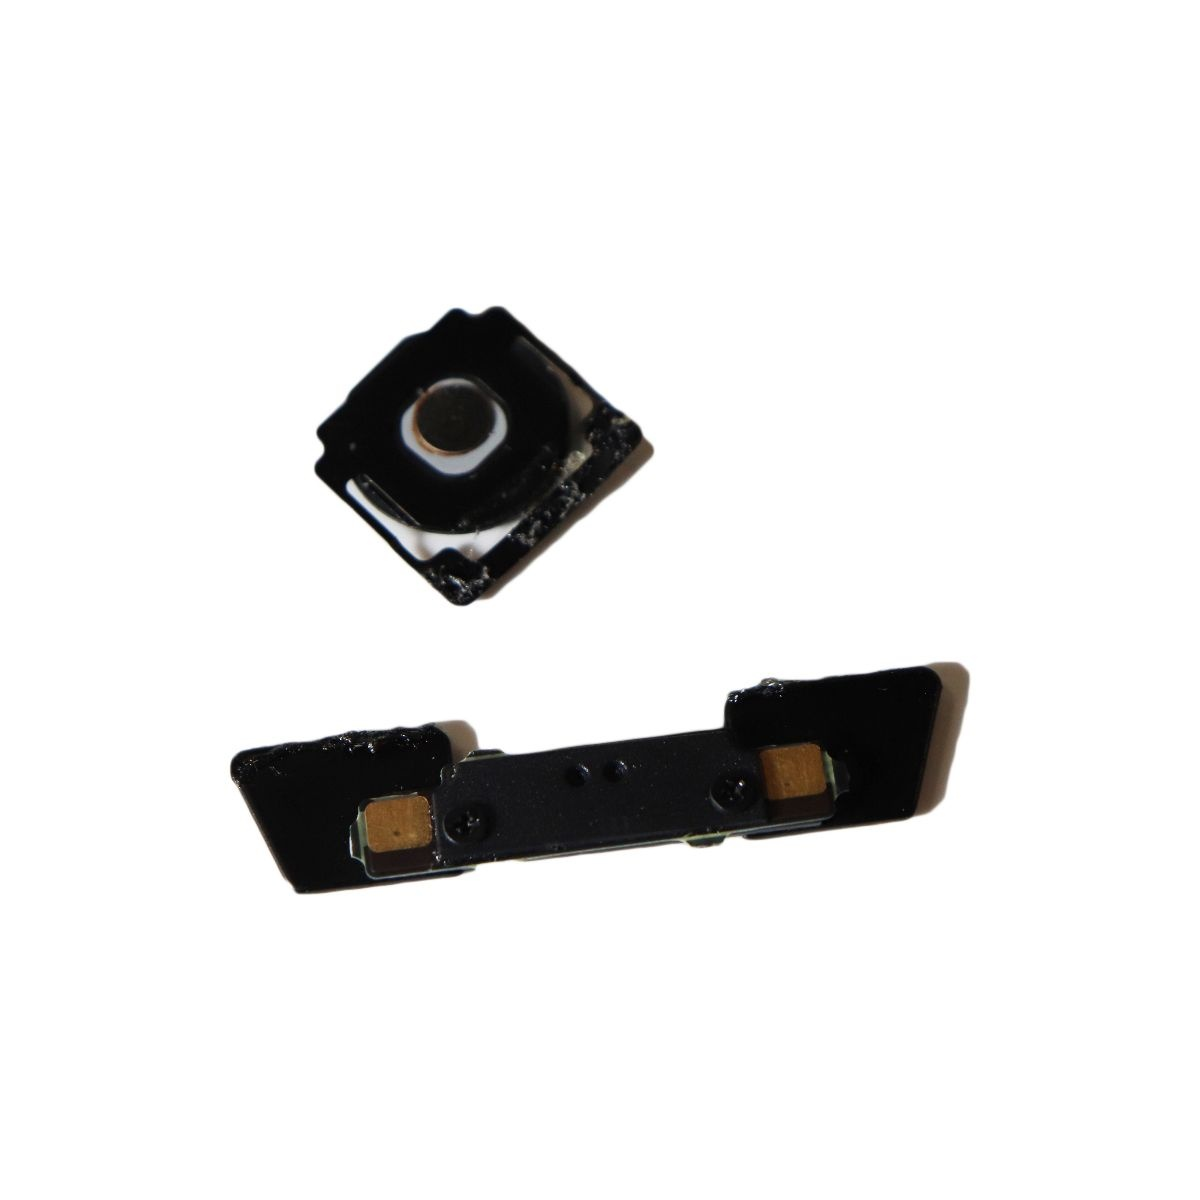 Apple Home Button and Board Repair Part for iPad 2 - A1396